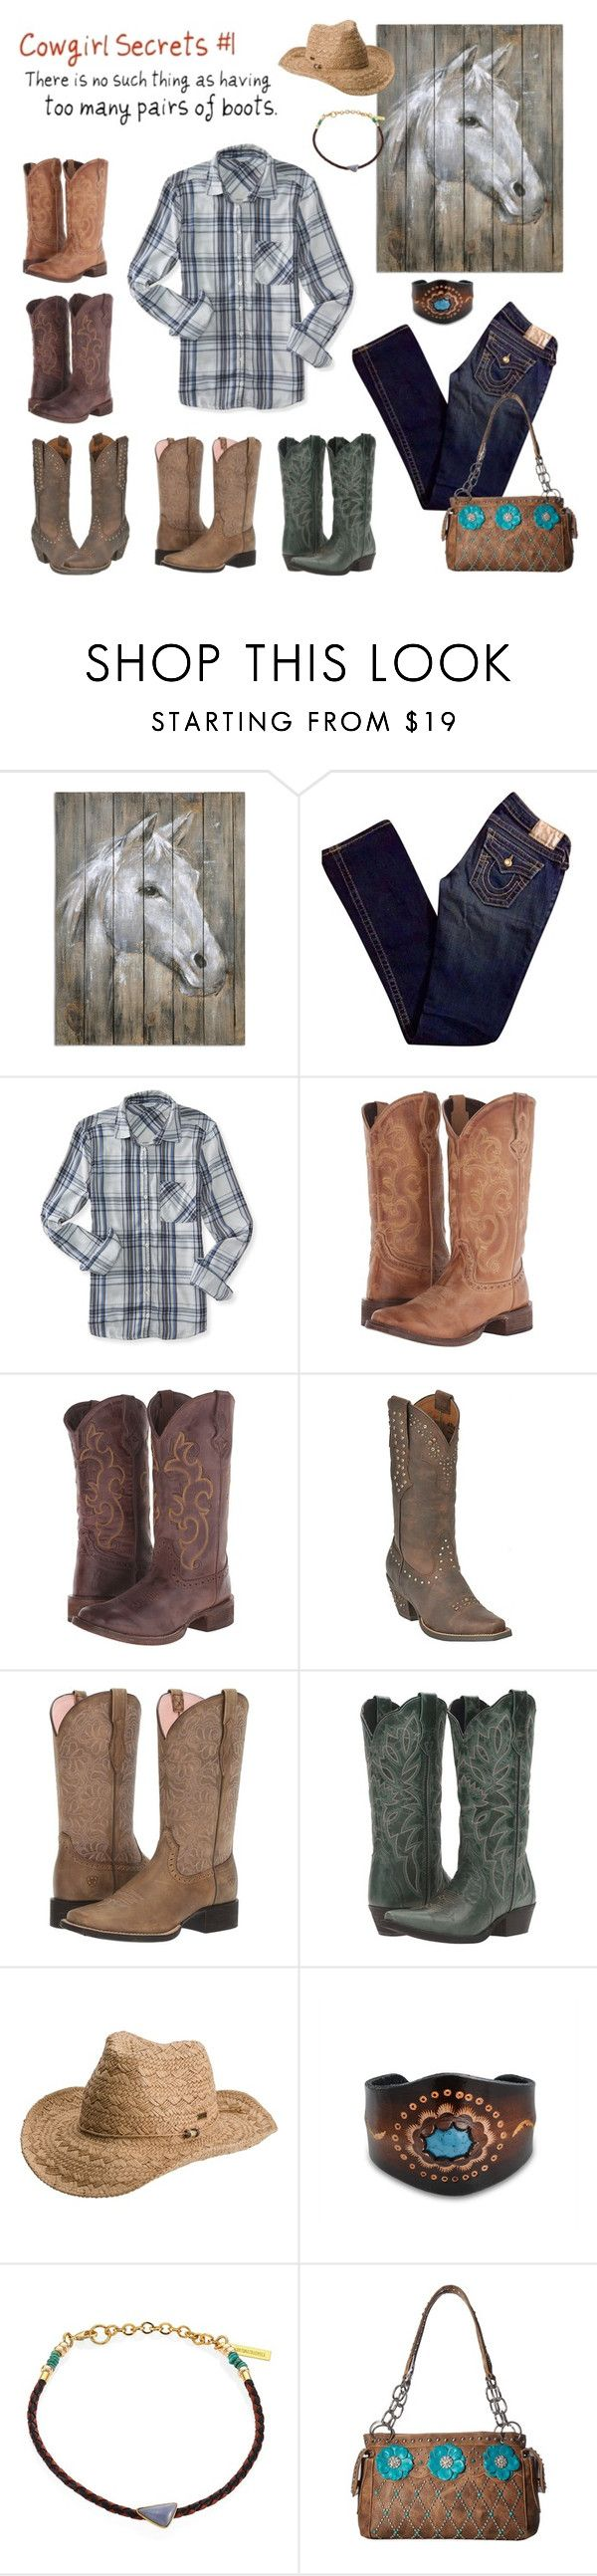 """Untitled #1296"" by shemomjojo ❤ liked on Polyvore featuring True Religion, Aéropostale, Roper, Ariat, Laredo, Roxy, Bling Jewelry, Lizzie Fortunato and M&F Western"